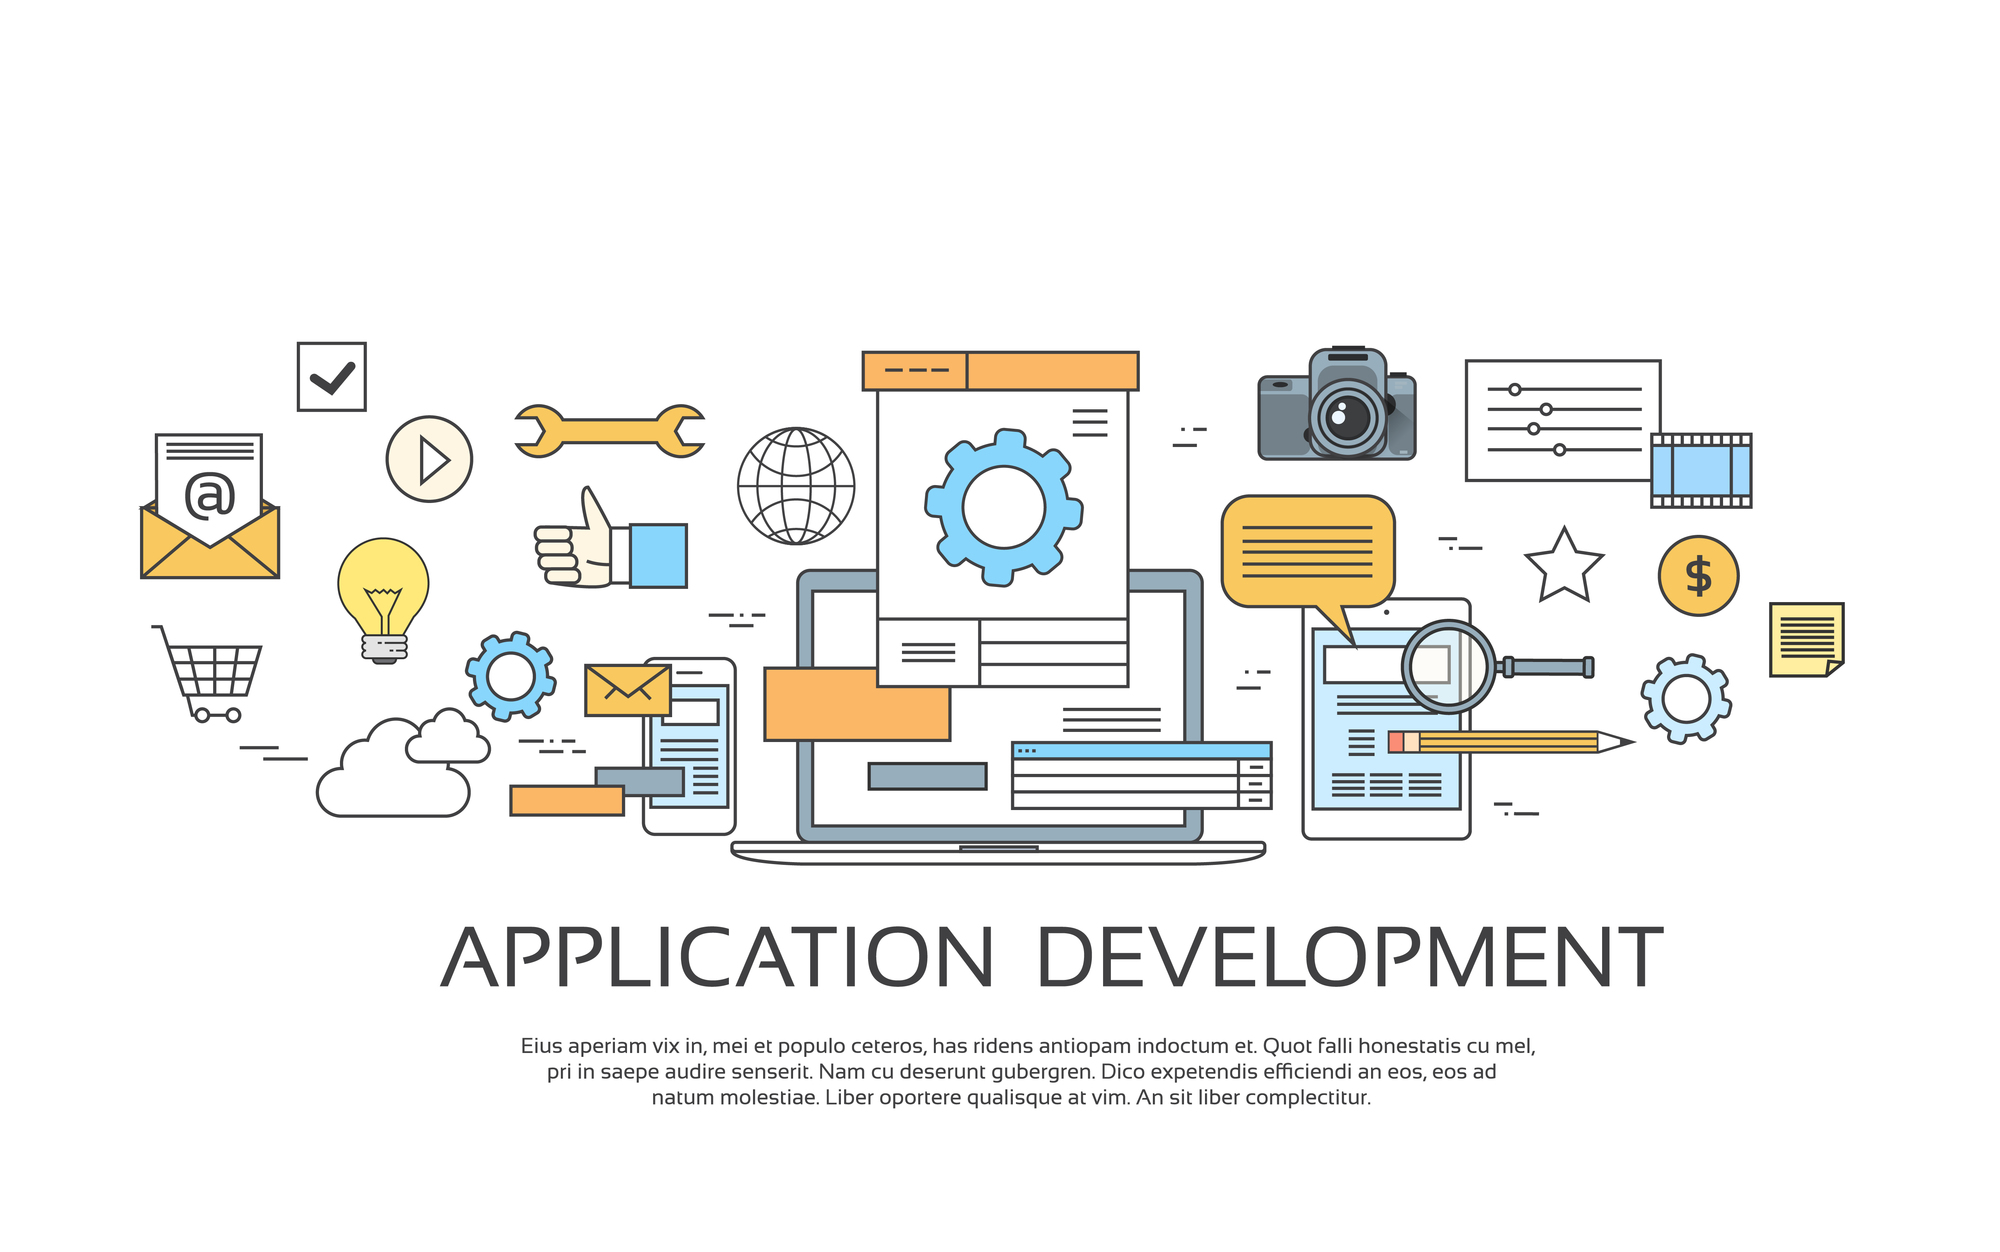 Application Development Create Design Site Programming Coding Set Icon Collection Vector Illustration